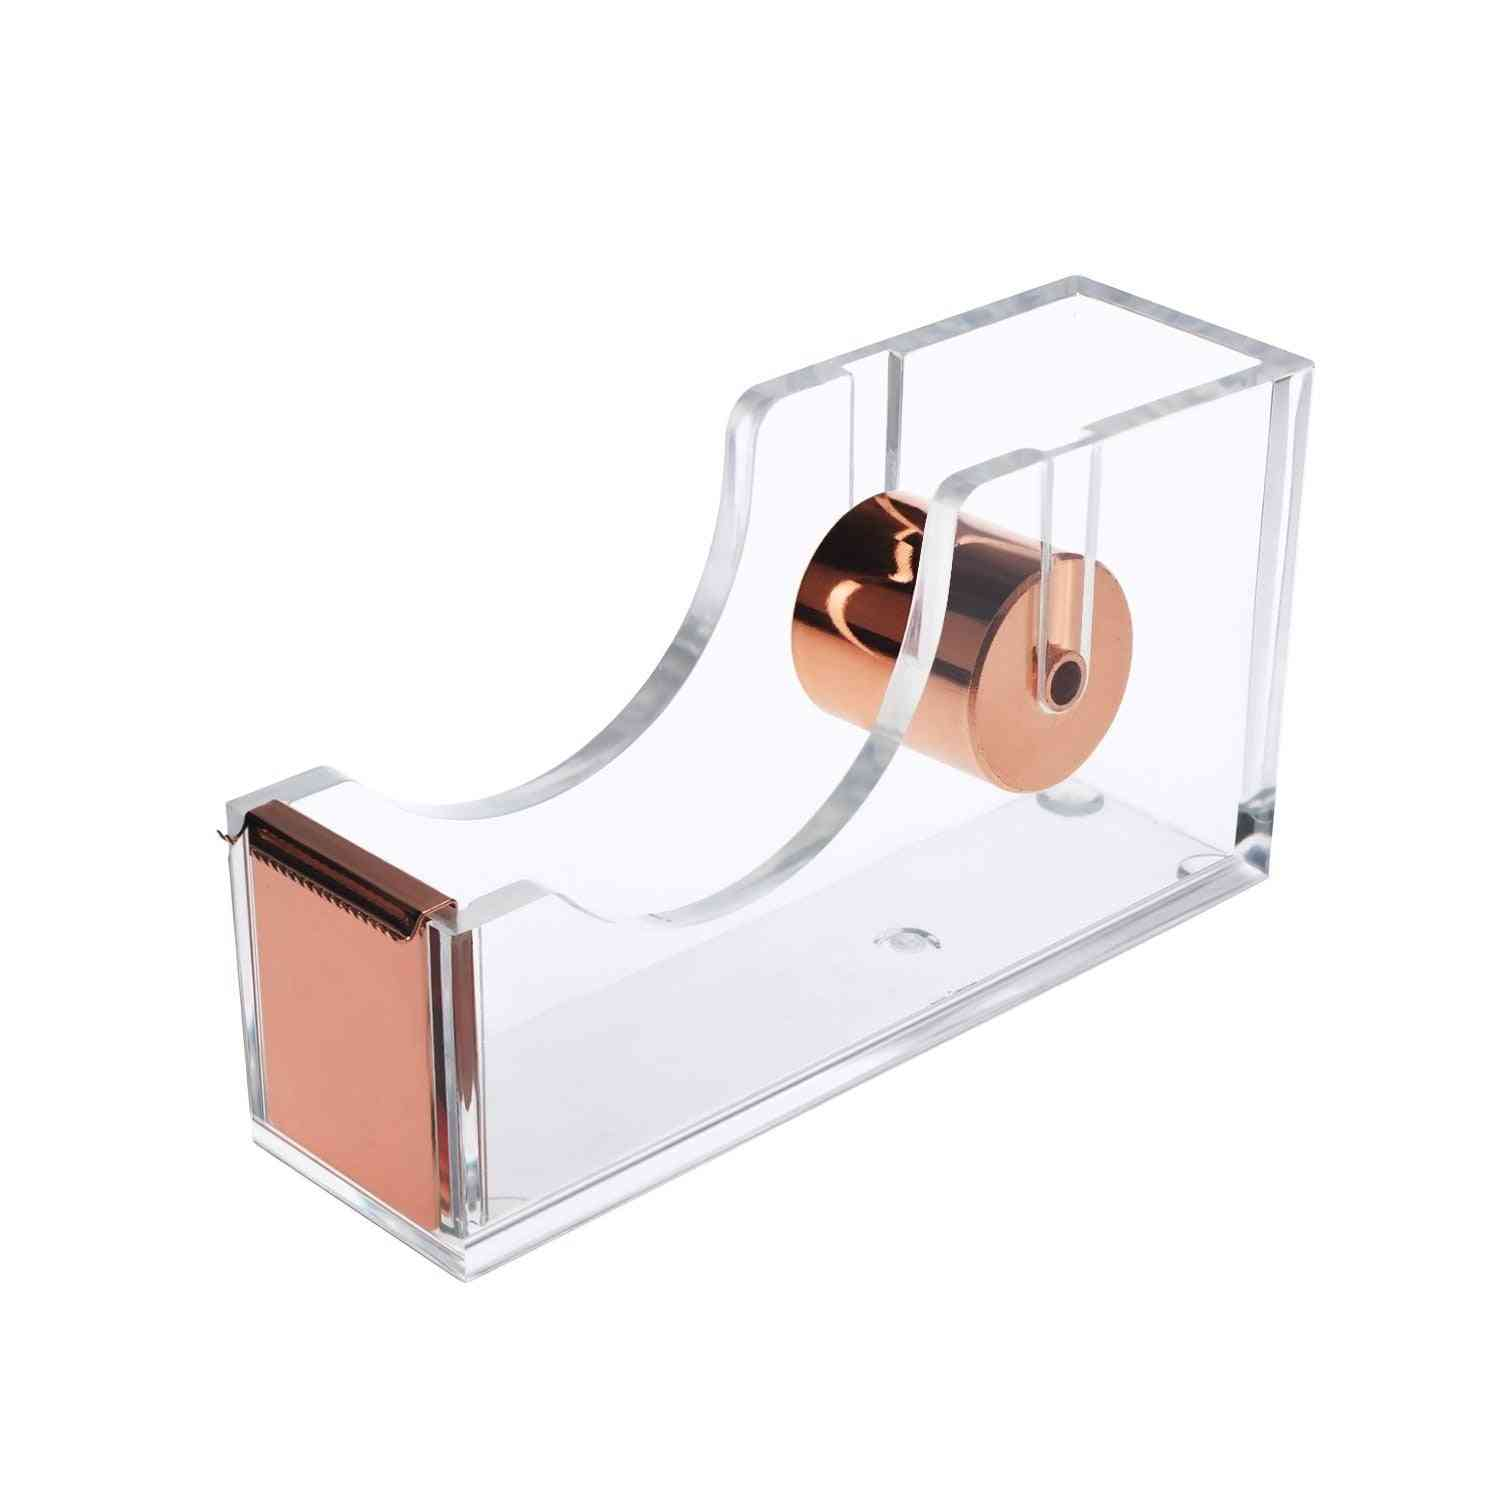 Square Shaped, Acrylic Tape Dispenser With Cutter